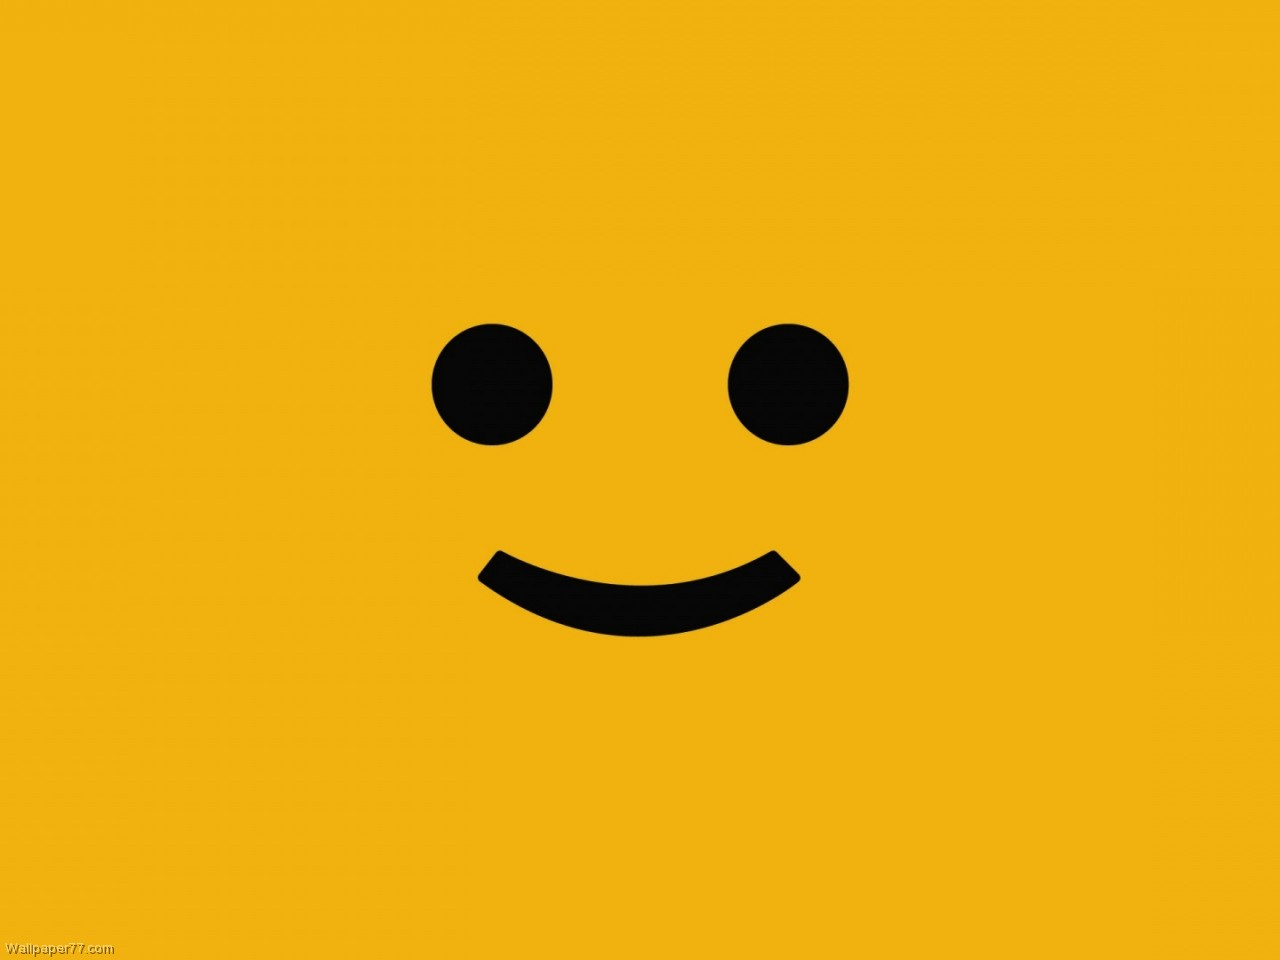 Related Images for Smiley Face Wallpaper Desktop Background 1280x960